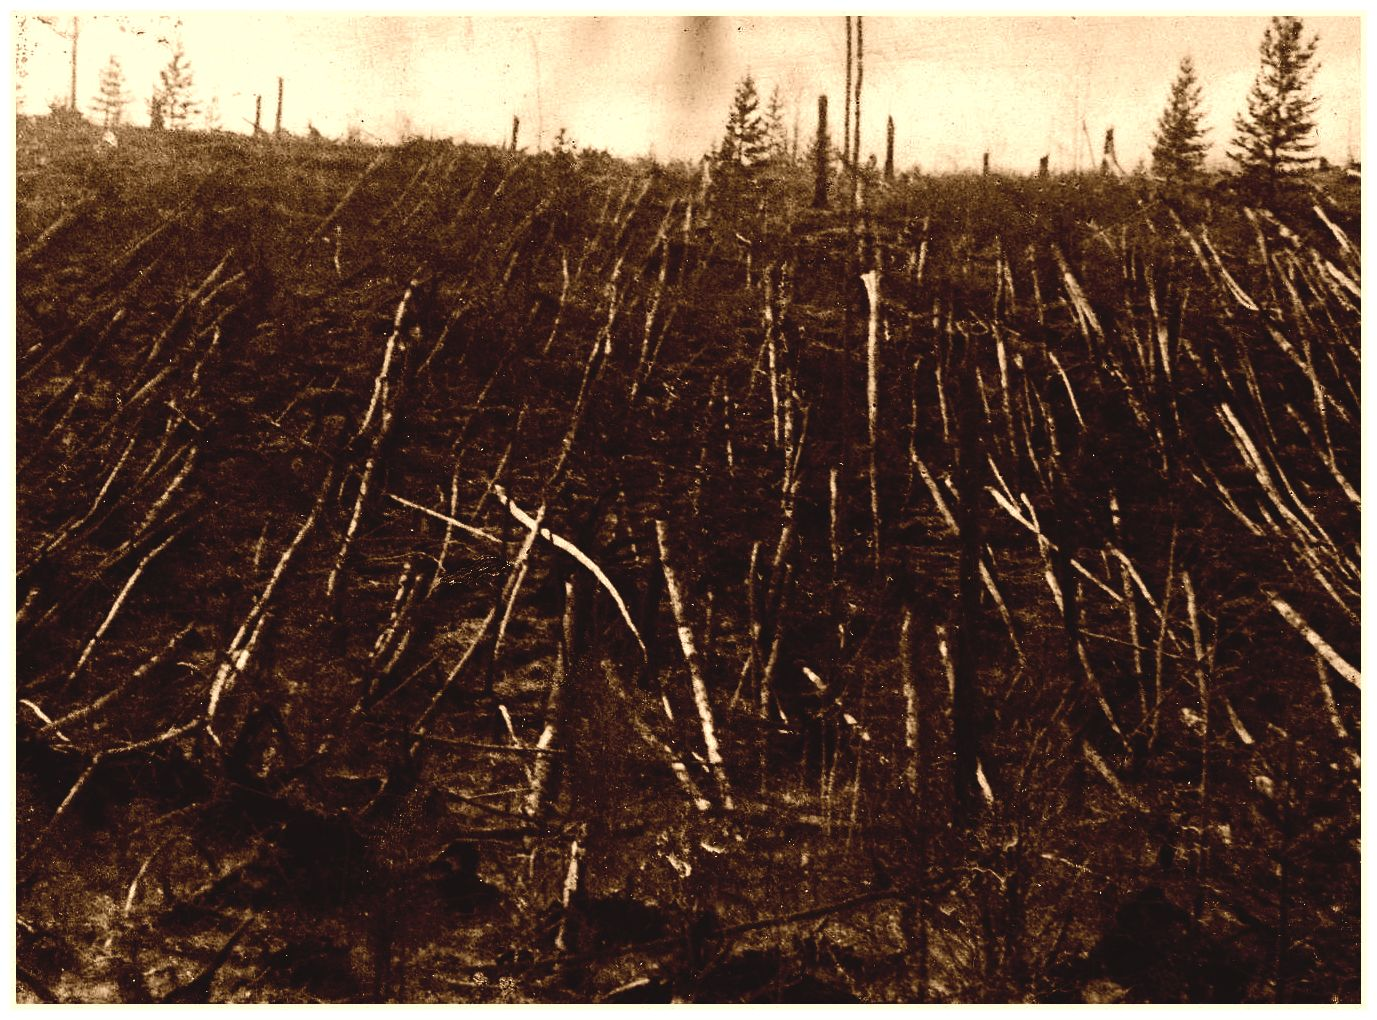 http://www.sott.net/image/image/6250/full/tunguska-photo.jpg